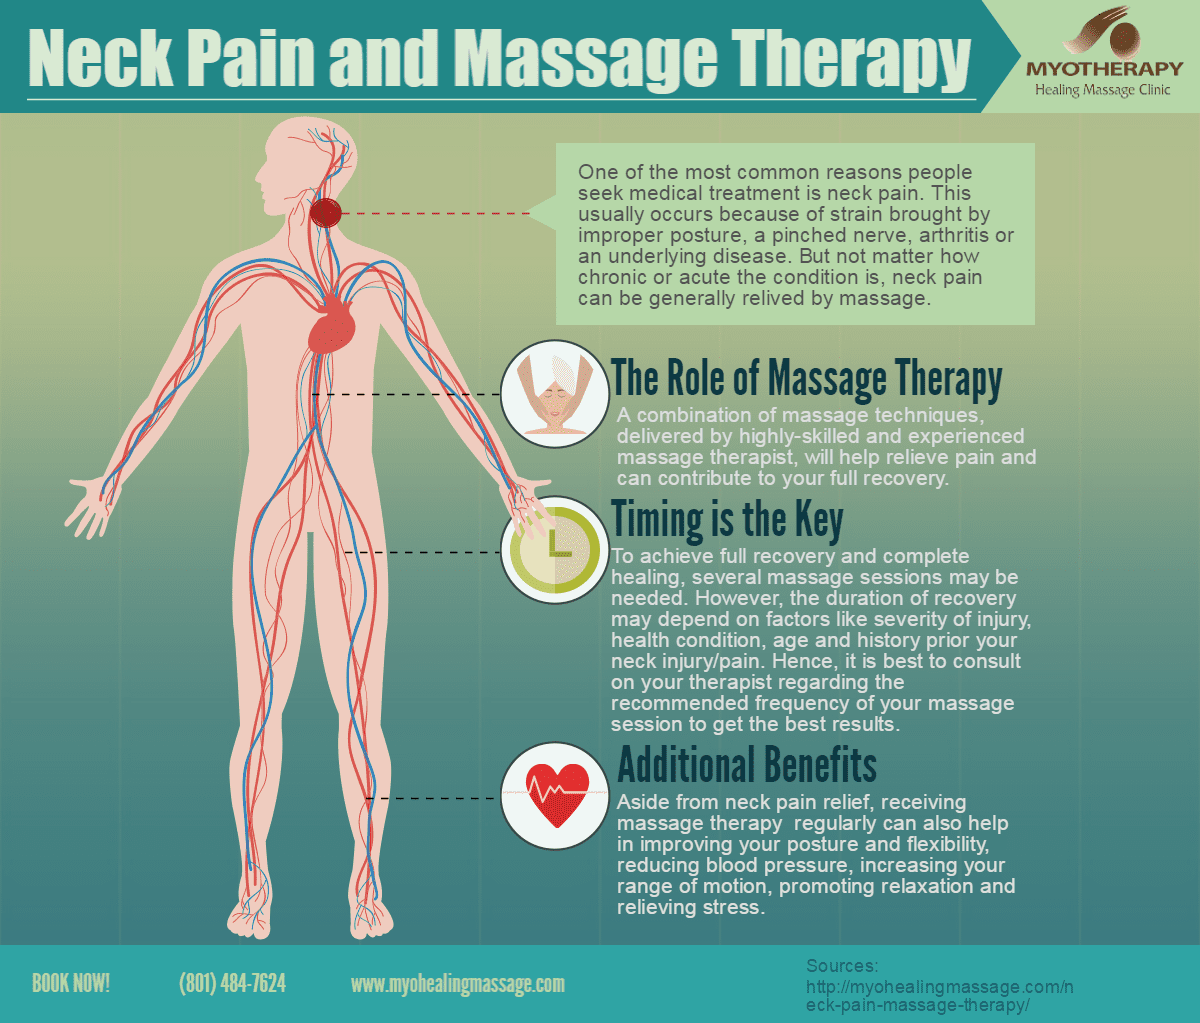 Neck Pain and Massage Therapy - Infographic